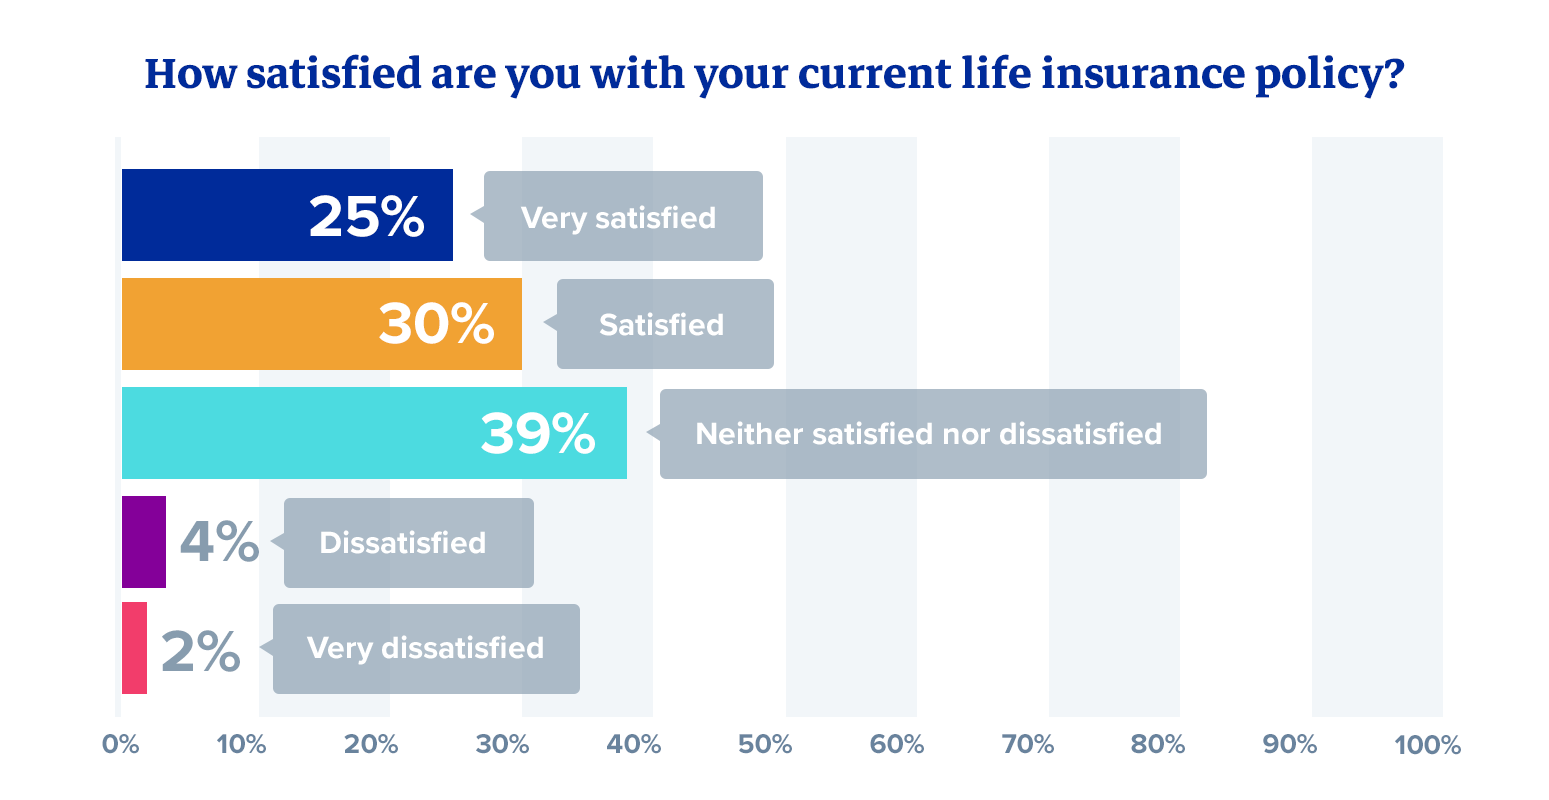 How satisfied are you with your current life insurance policy?